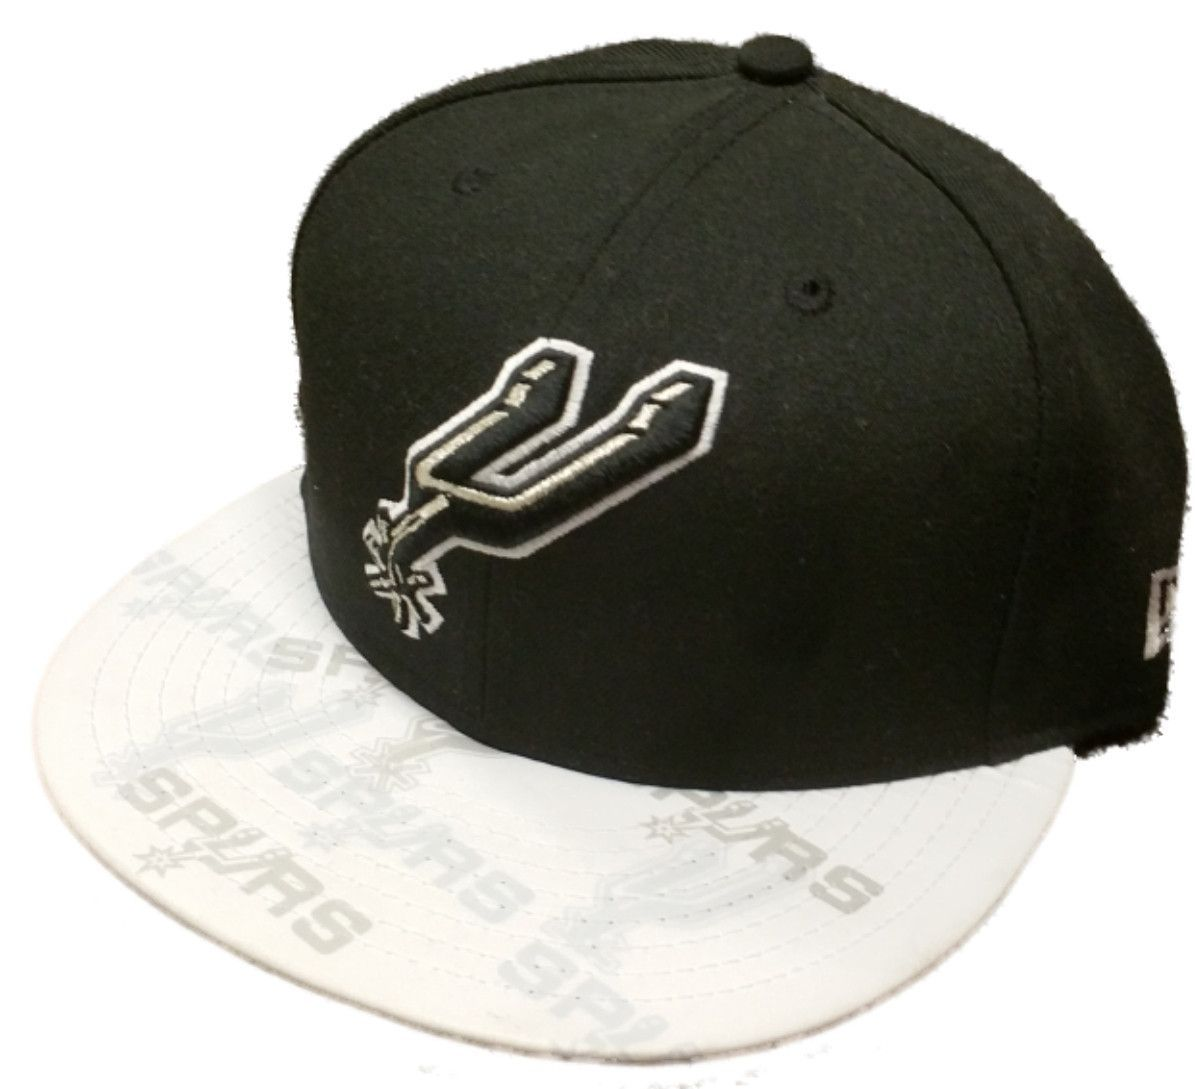 buy online 6edeb 427a7 ... get san antonio spurs new era 59fifty black white hardwood fitted hat  cap 7 1 2